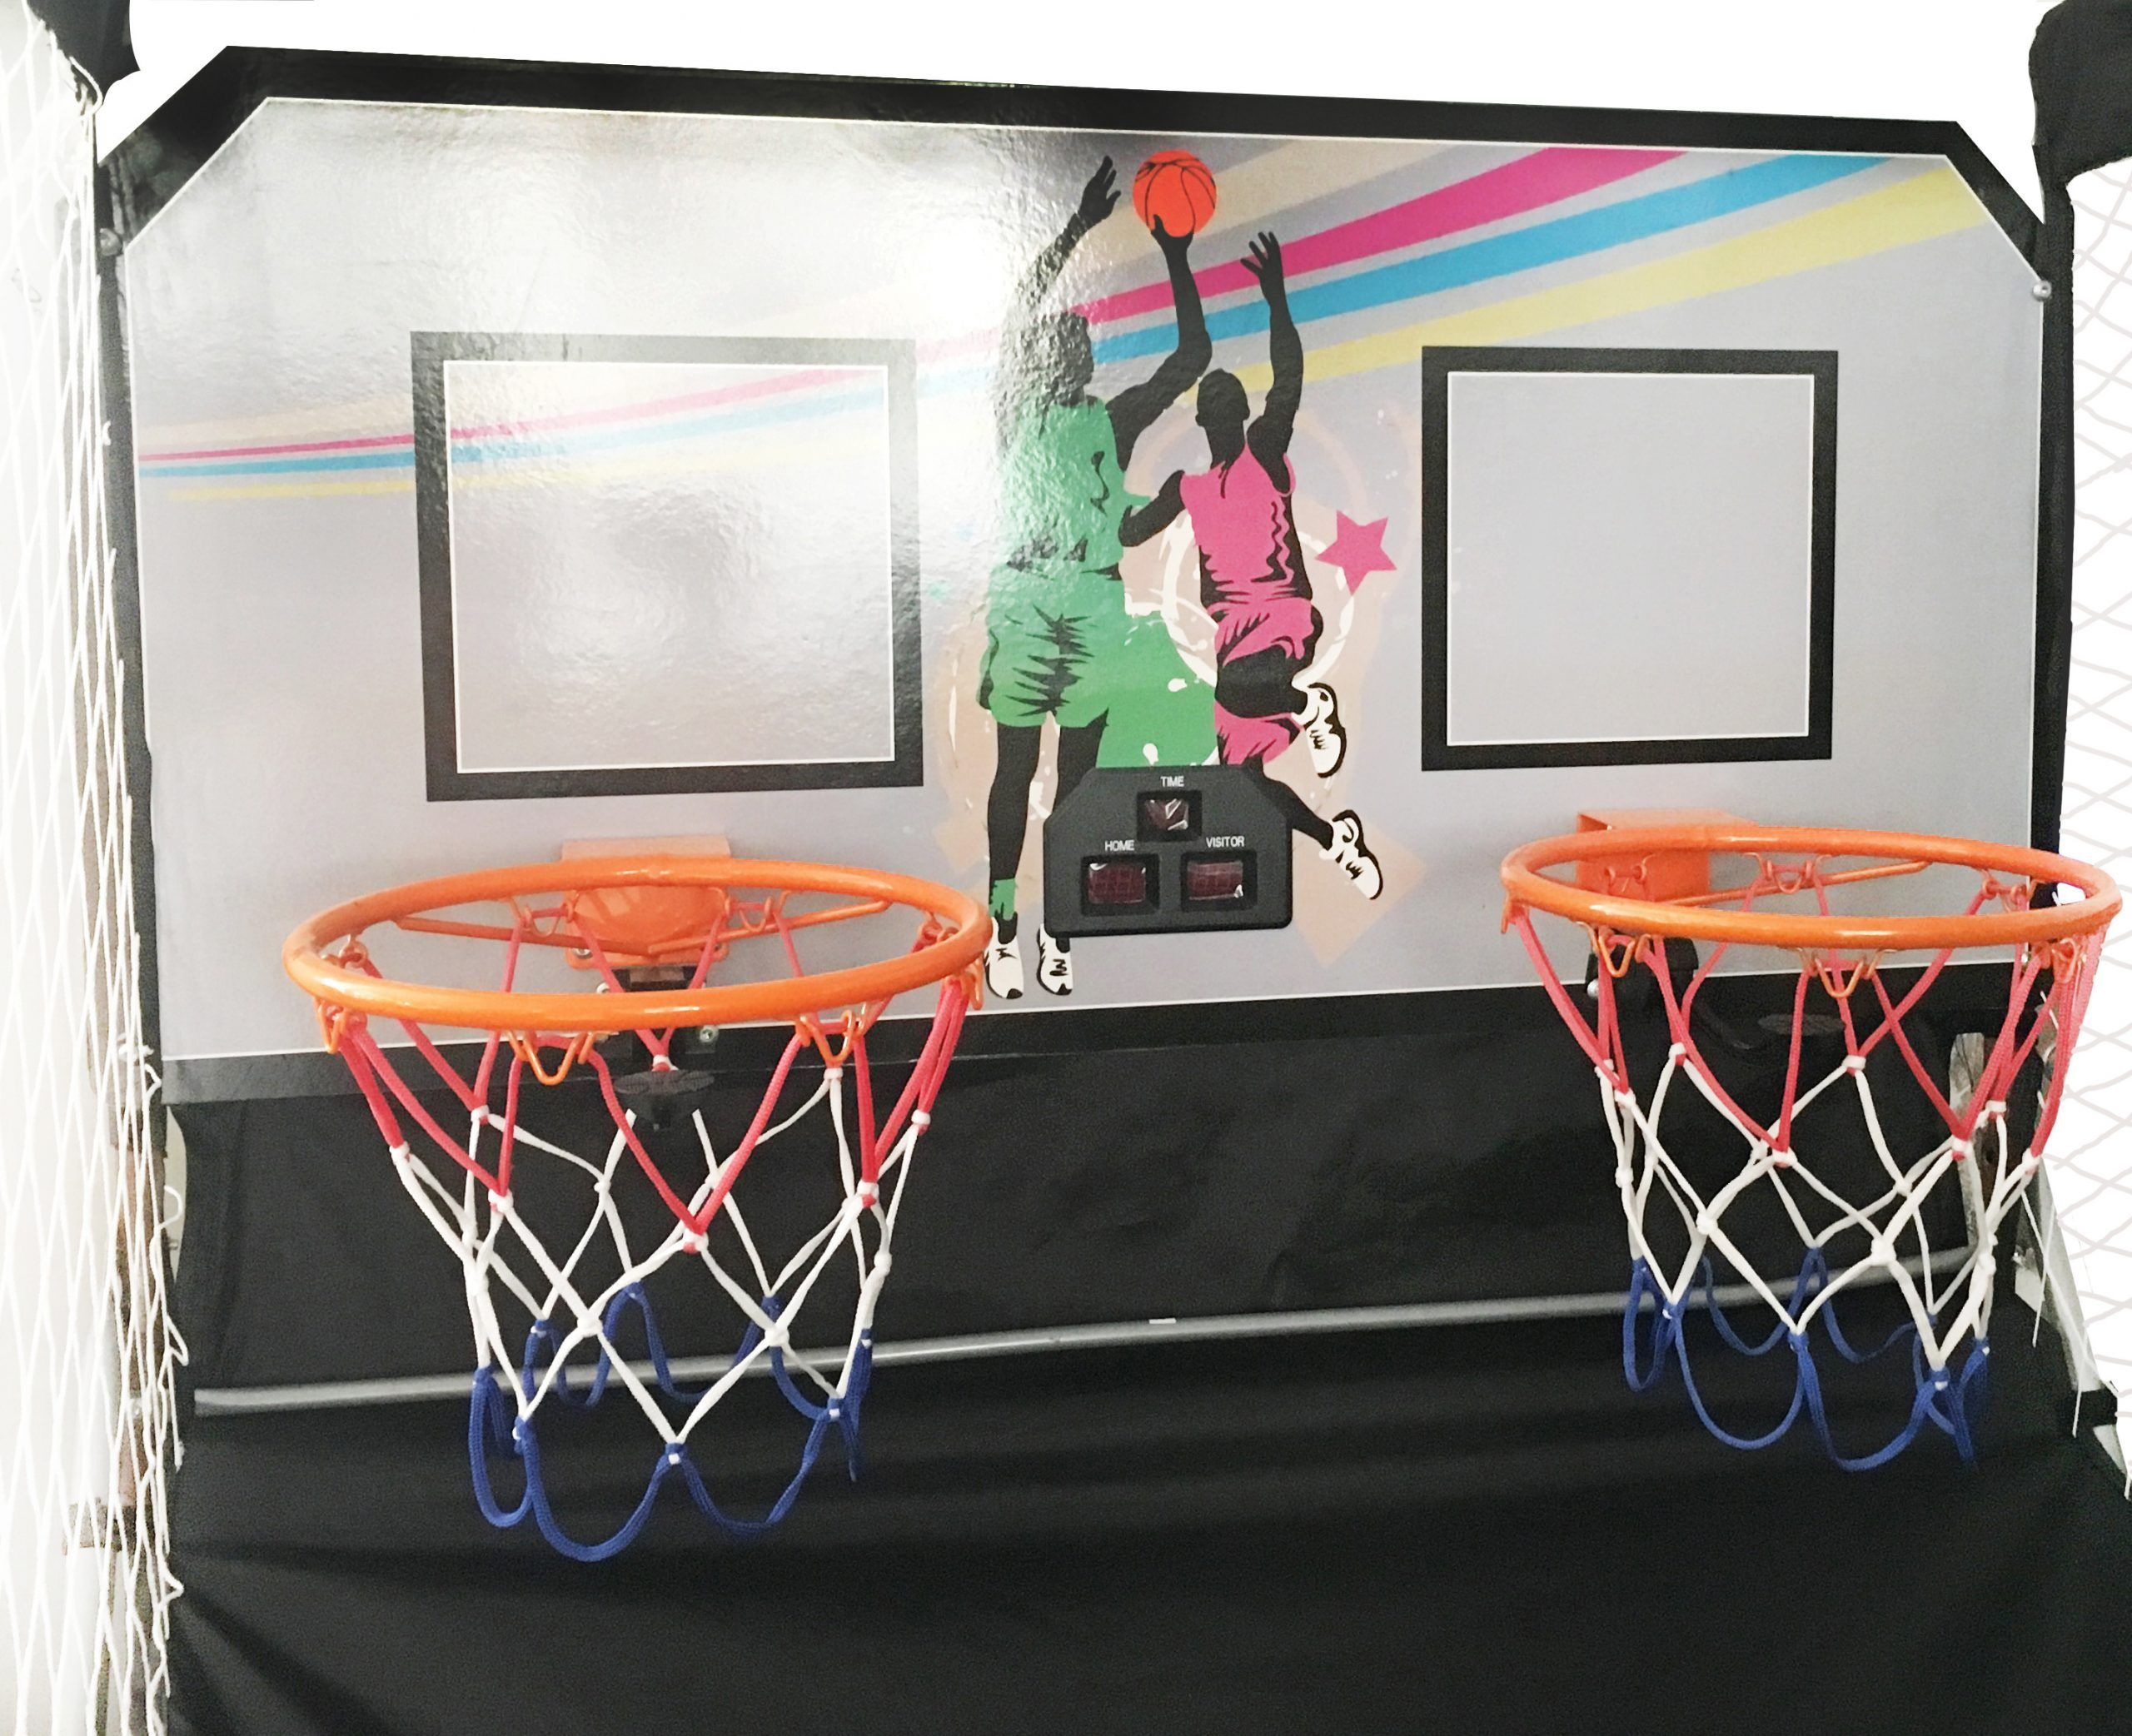 Arcade Basketball Game 2Player Electronic Sports in 2020